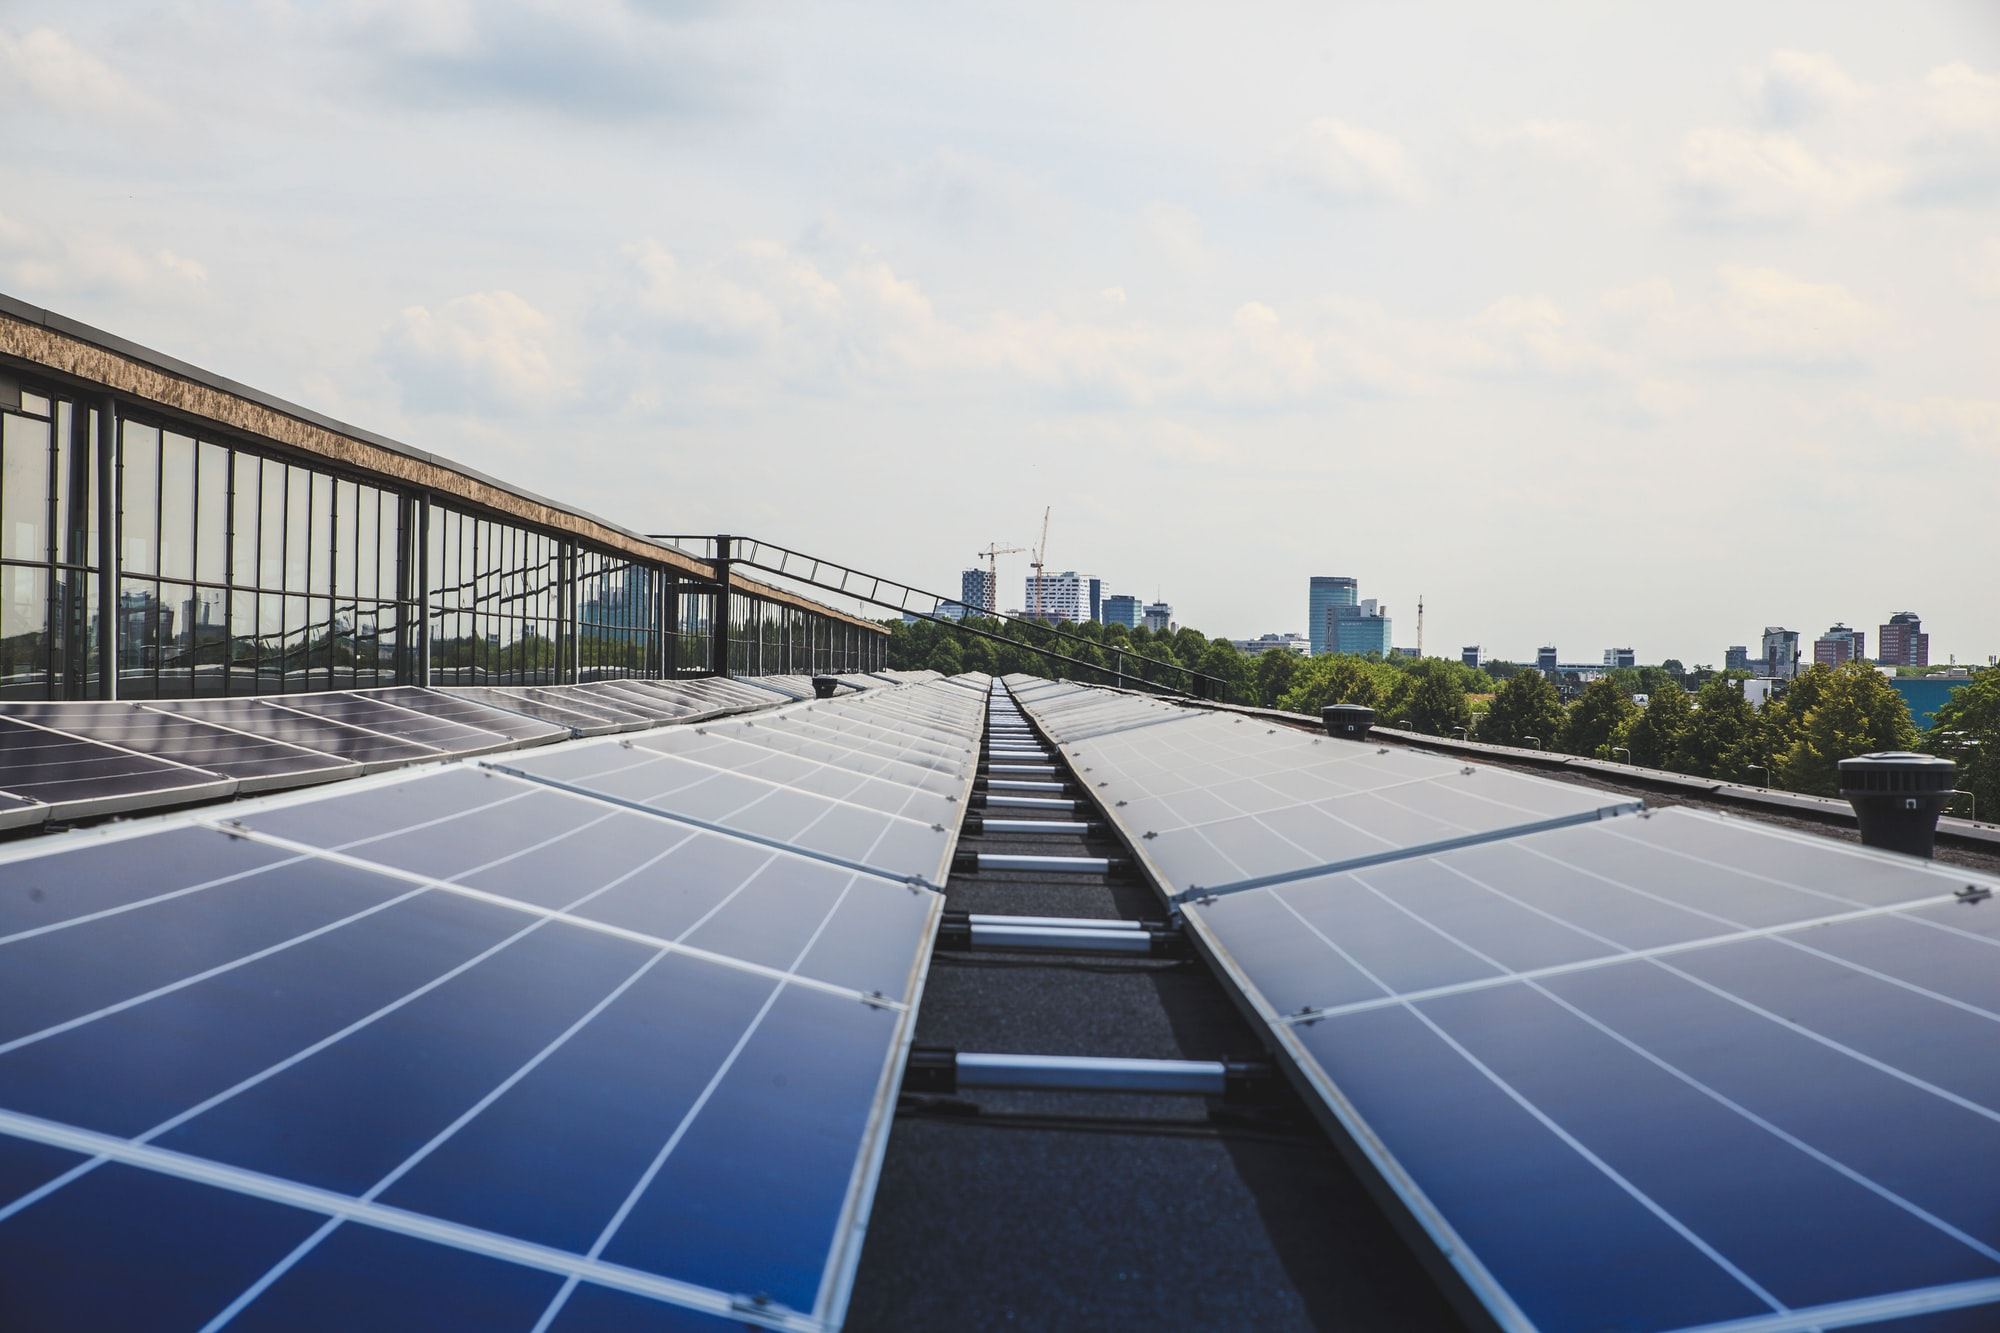 Colorado is poised to give a new boost to distributed solar and battery systems